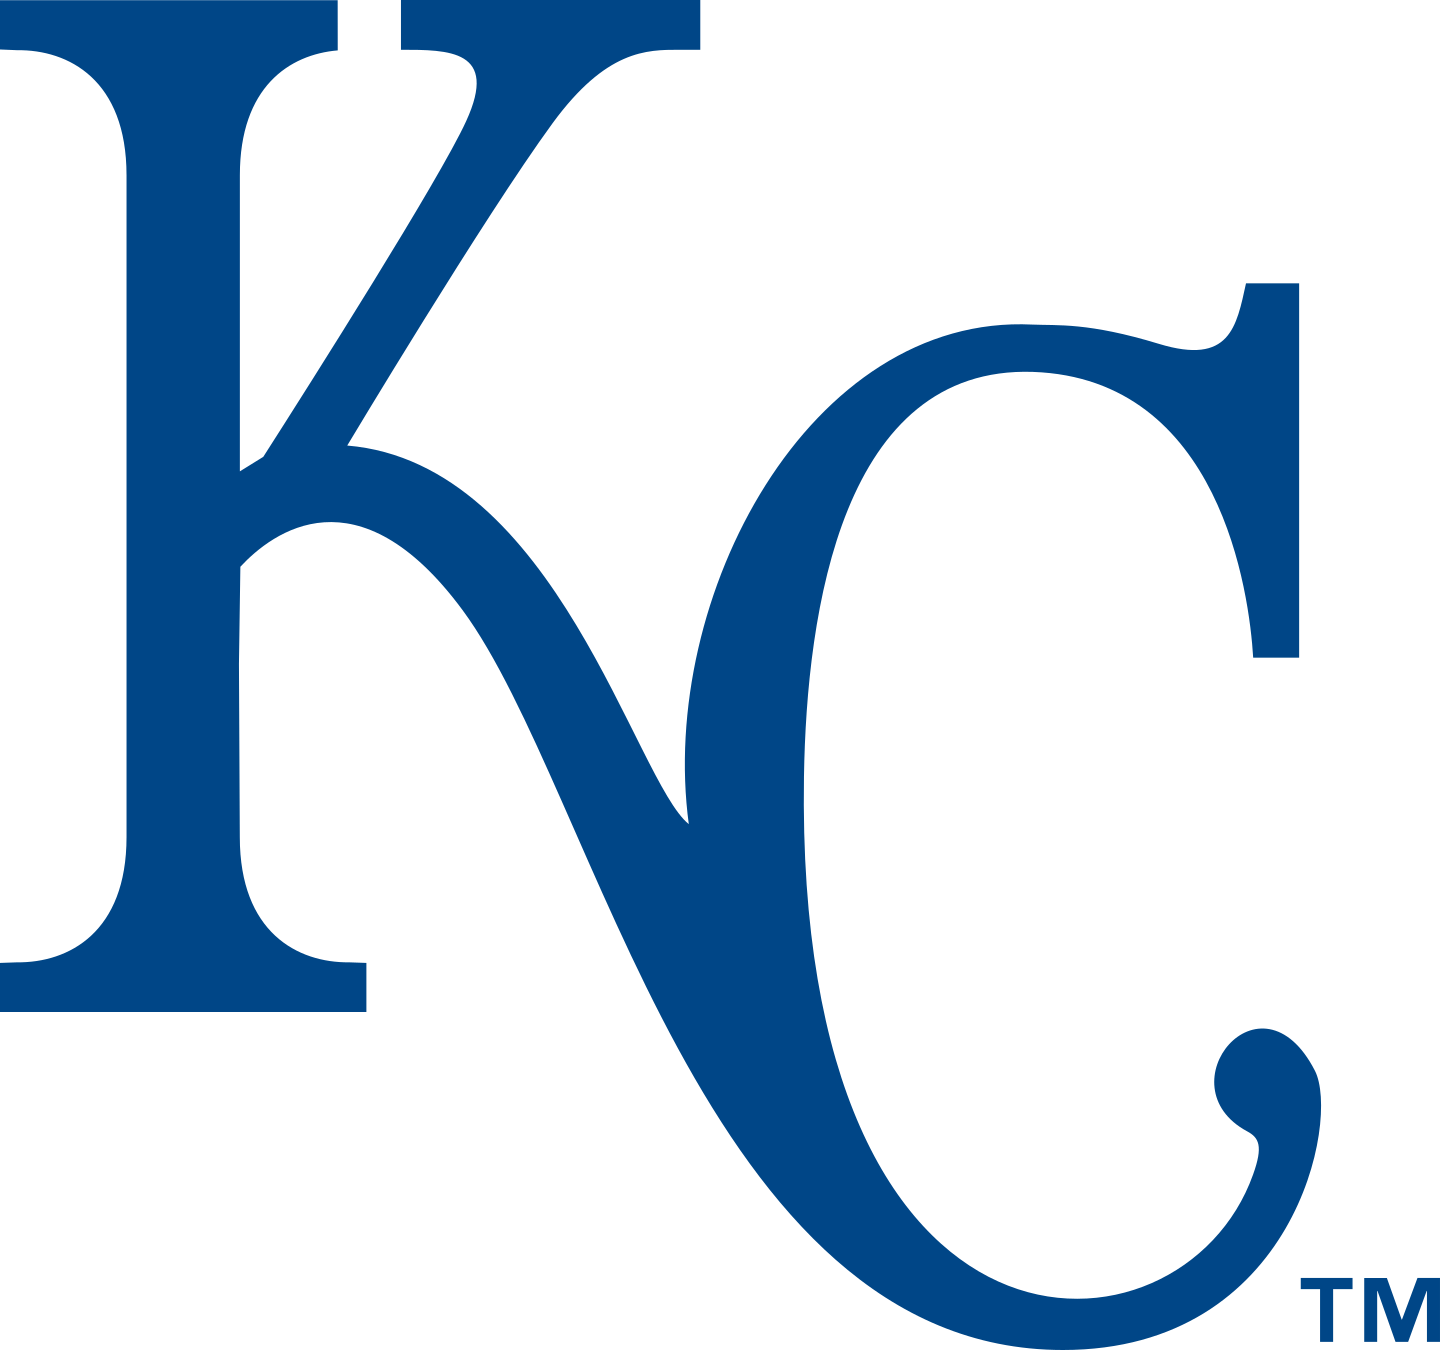 kansas city royals logo 2 - Kansas City Royals Logo